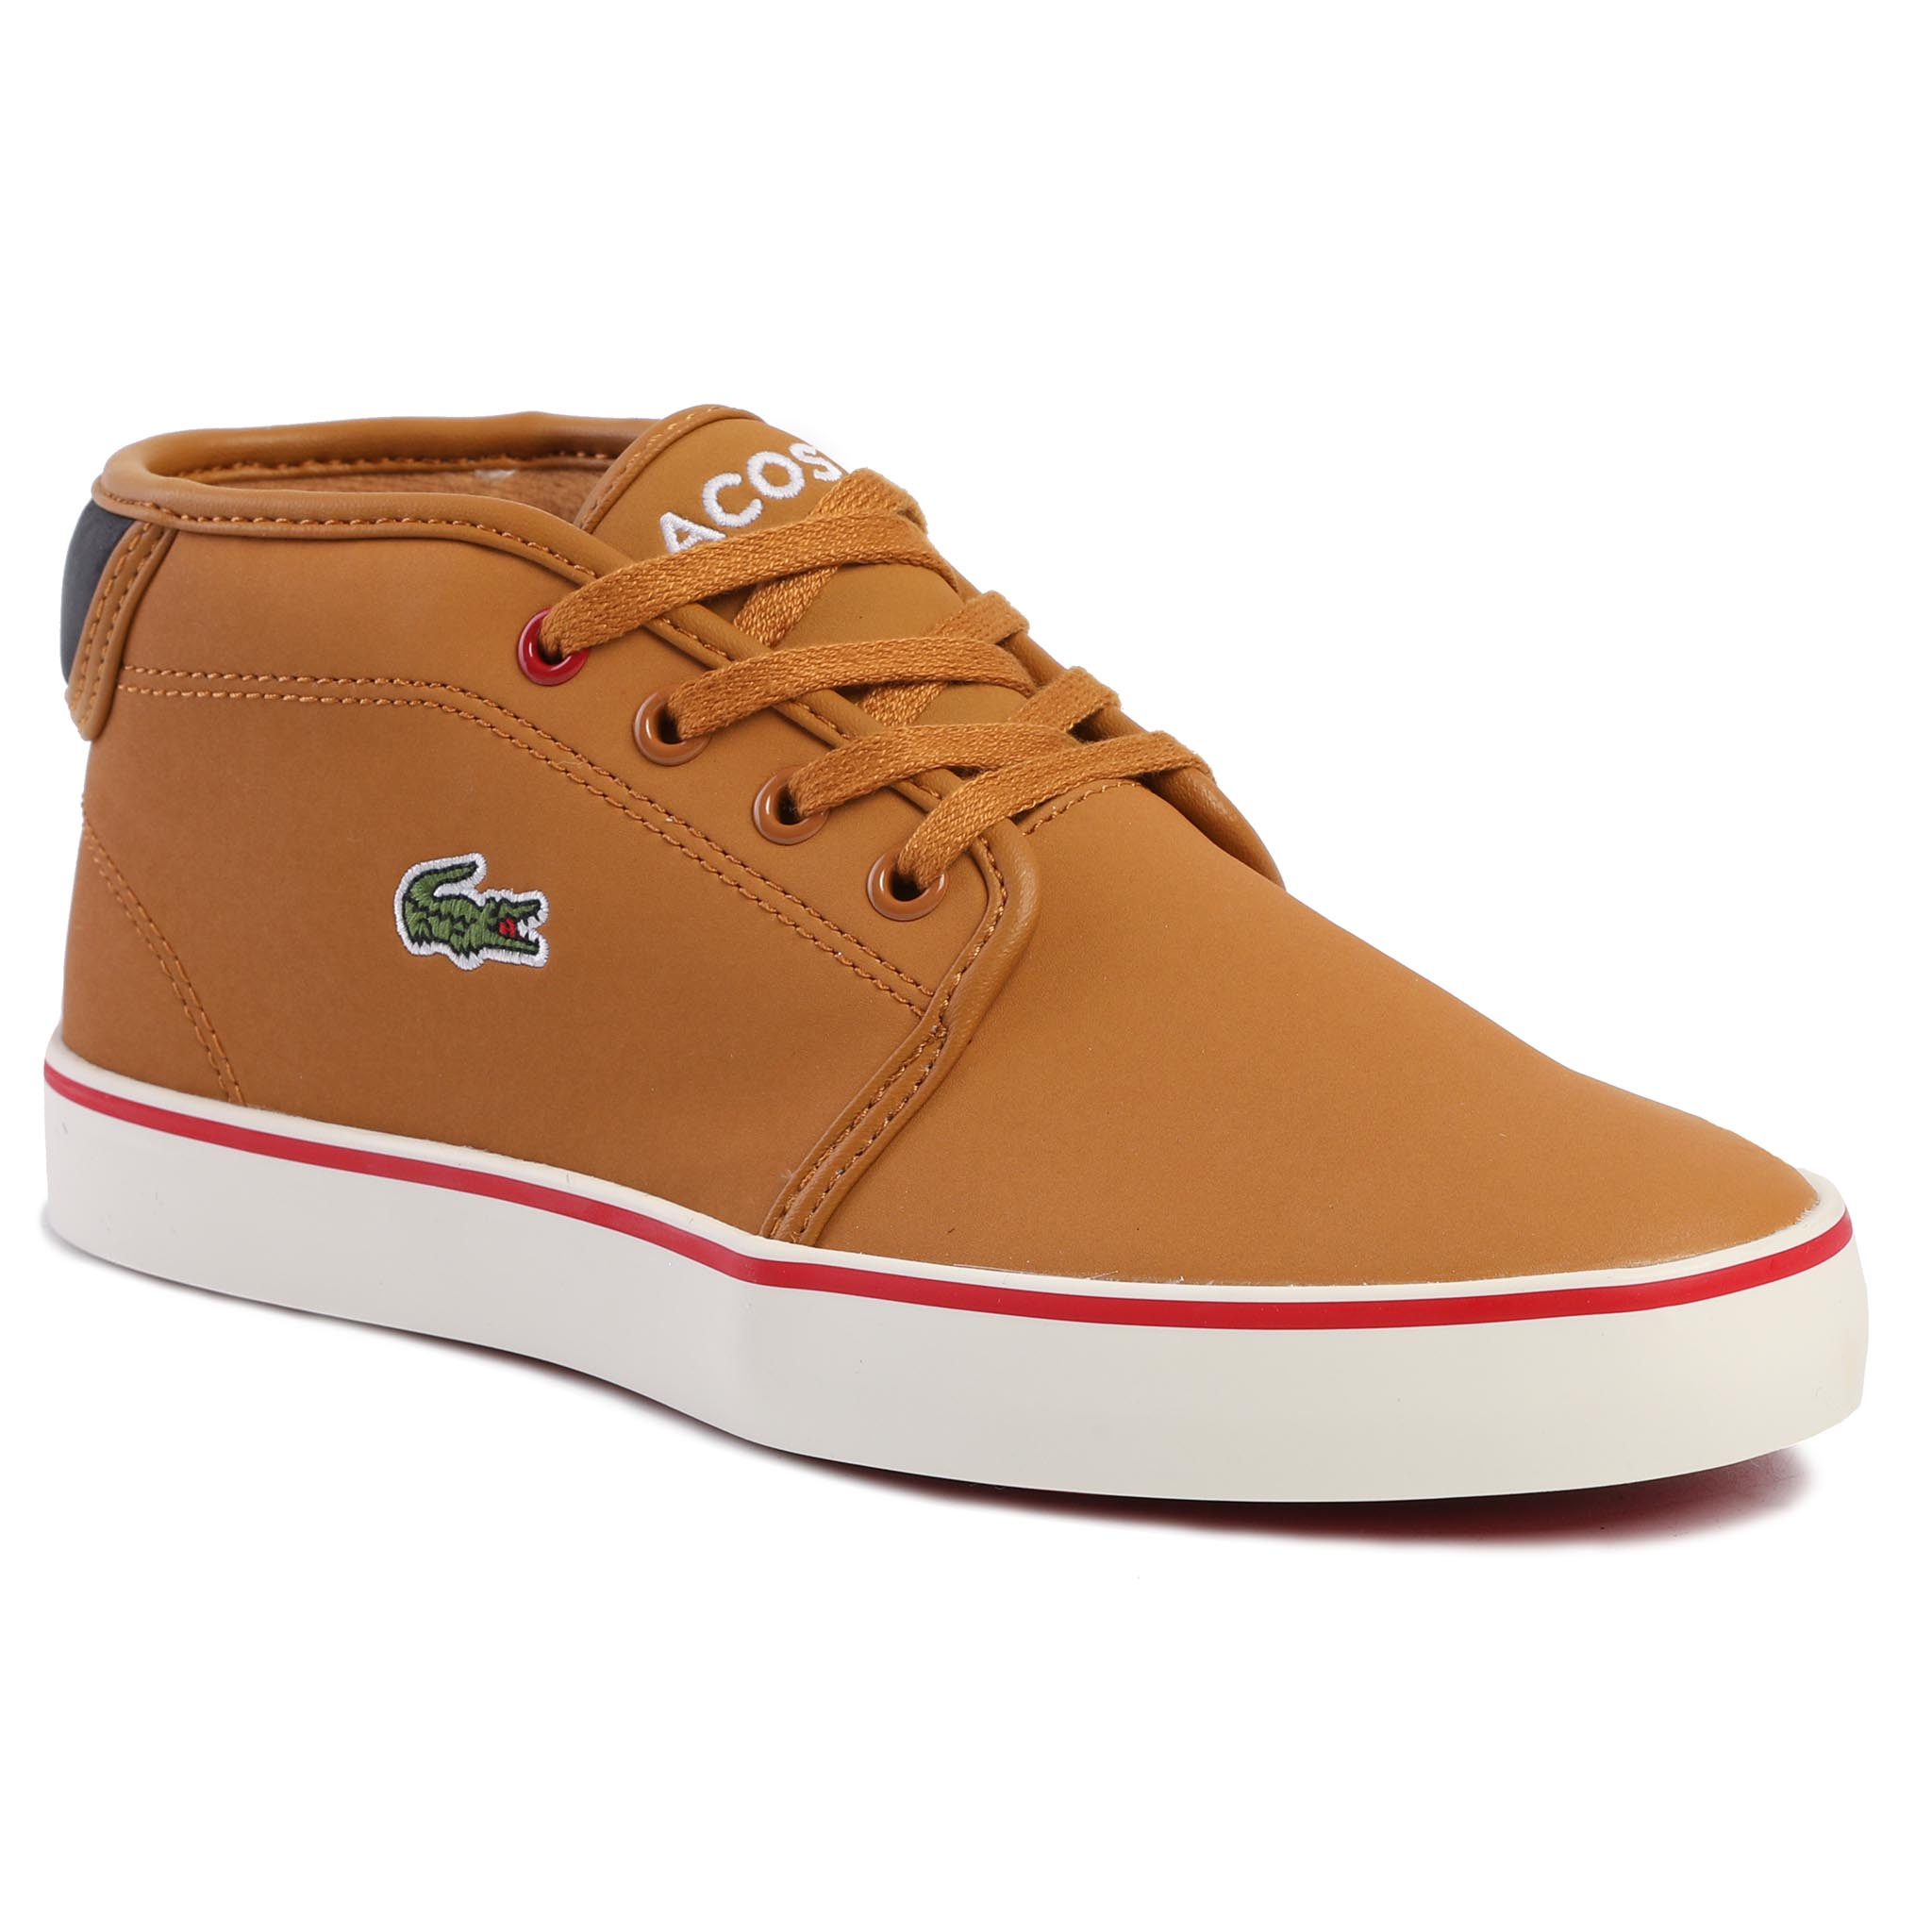 Sneakersy LACOSTE - Ampthill Thermo 419 1 Cuj 7-38CUJ000205B Tan/Blk